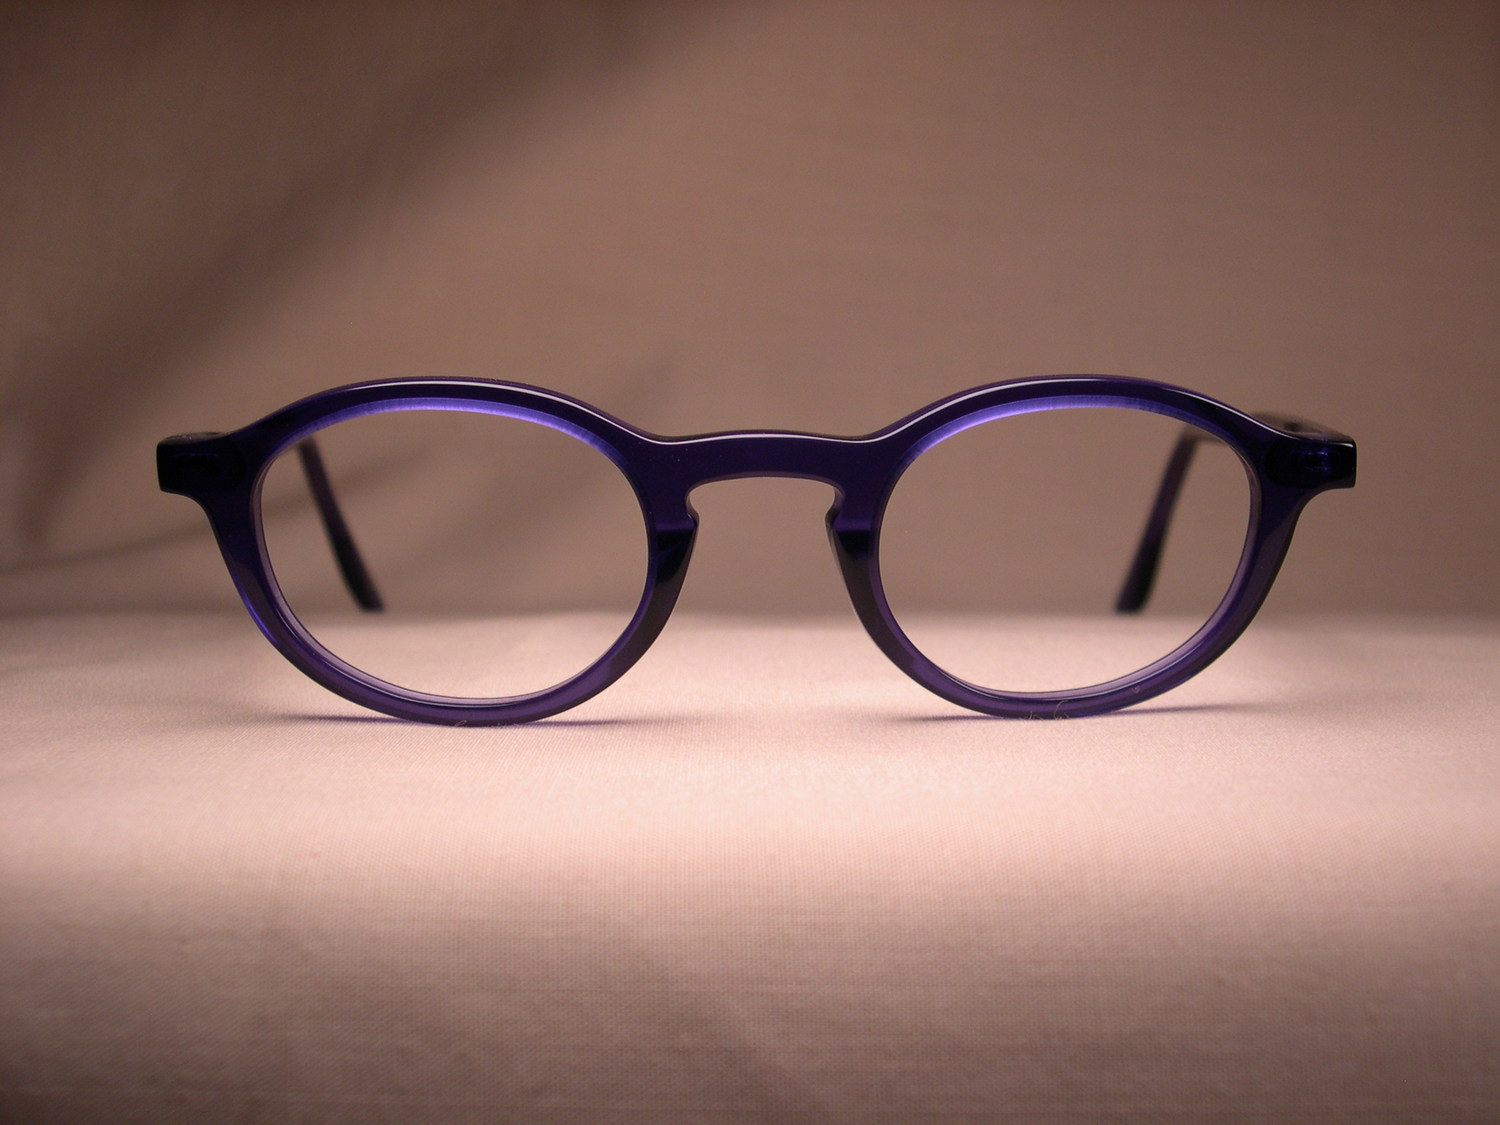 Indivijual-Custom-Glasses-28.jpg